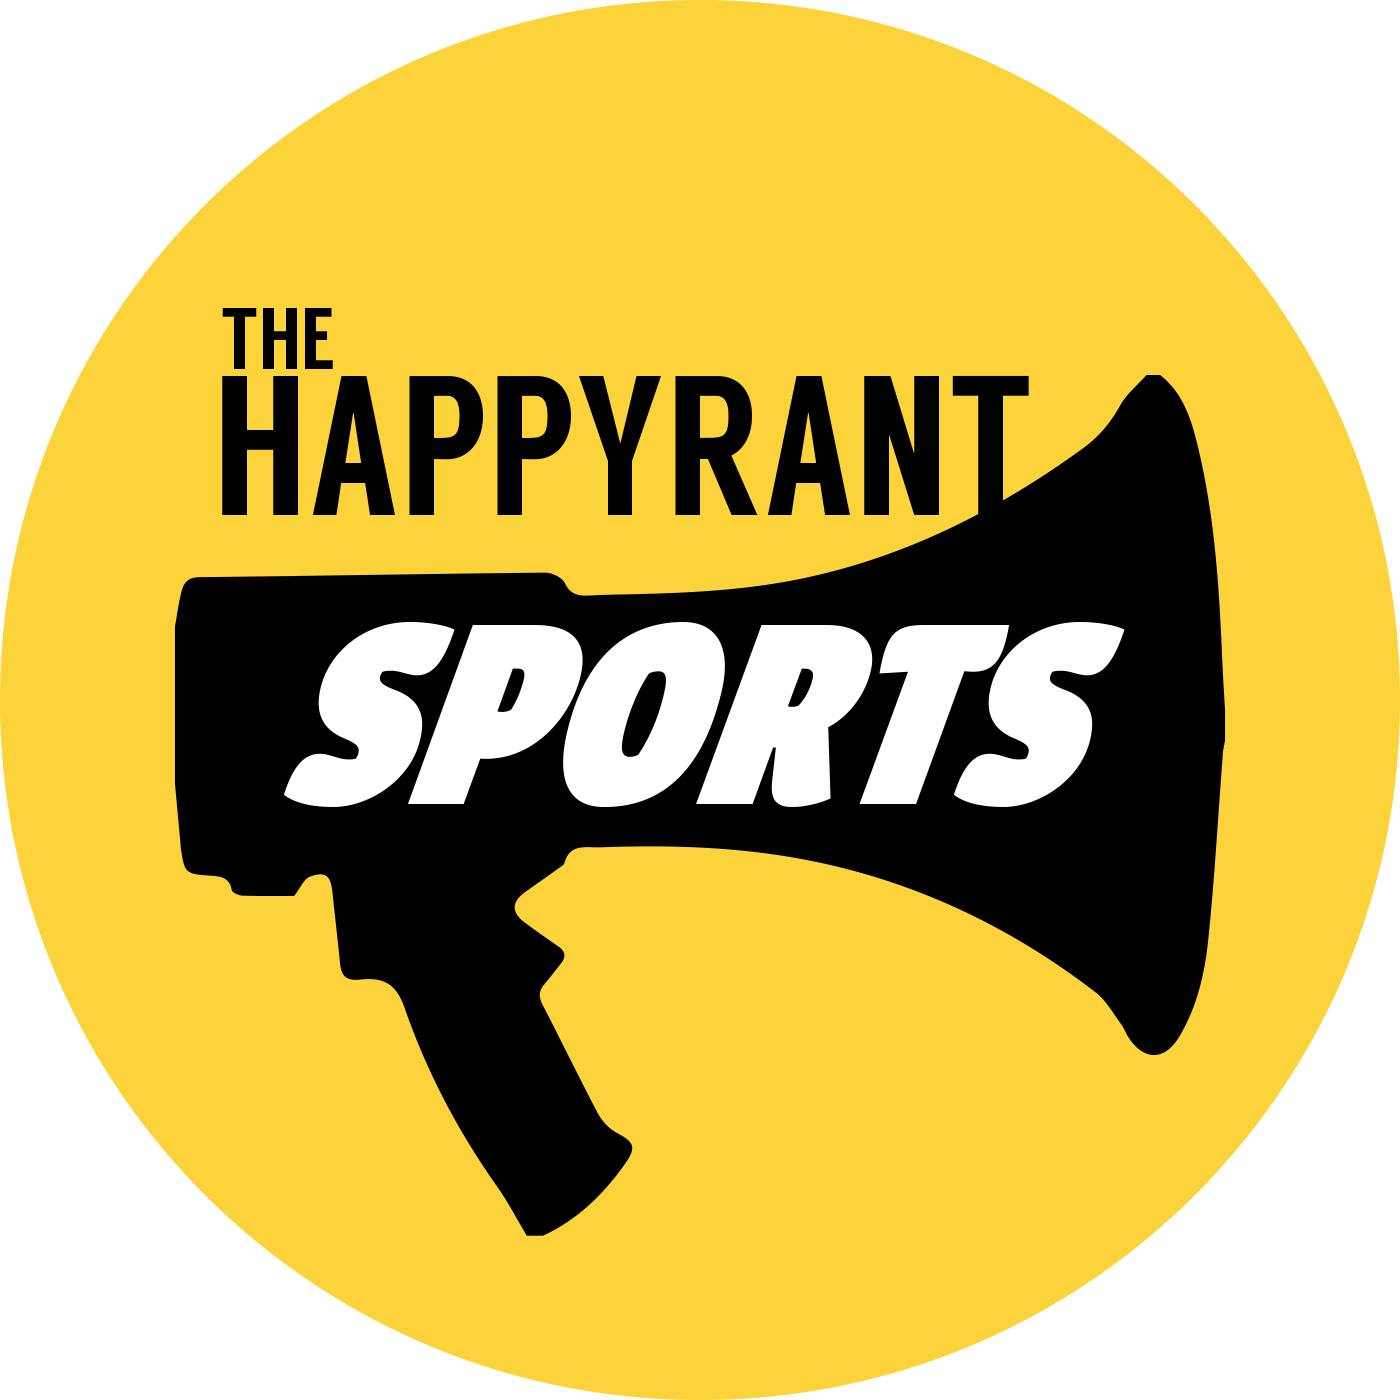 Artwork for Happy Rant Sports Episode #13 - Drabek, Ballpark Nonsense, Apatow on Sports, and the NBA Draft